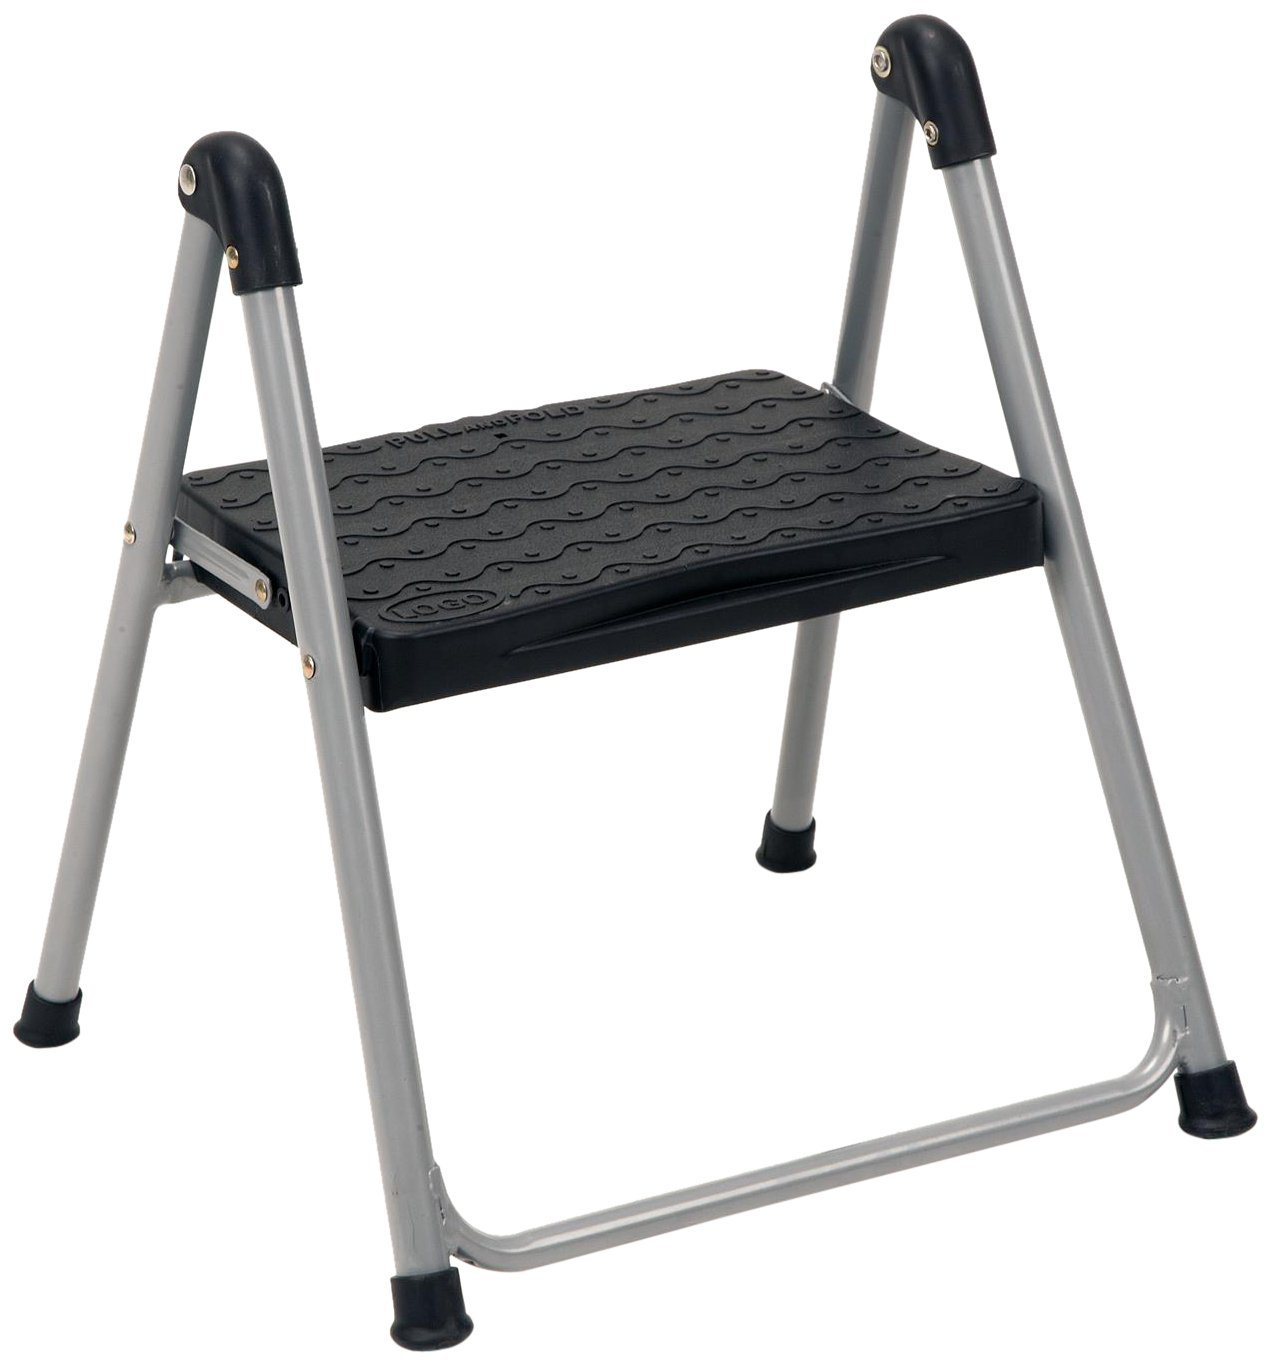 Bed Bath Beyond Step Ladder Step Stools For Beds Wooden